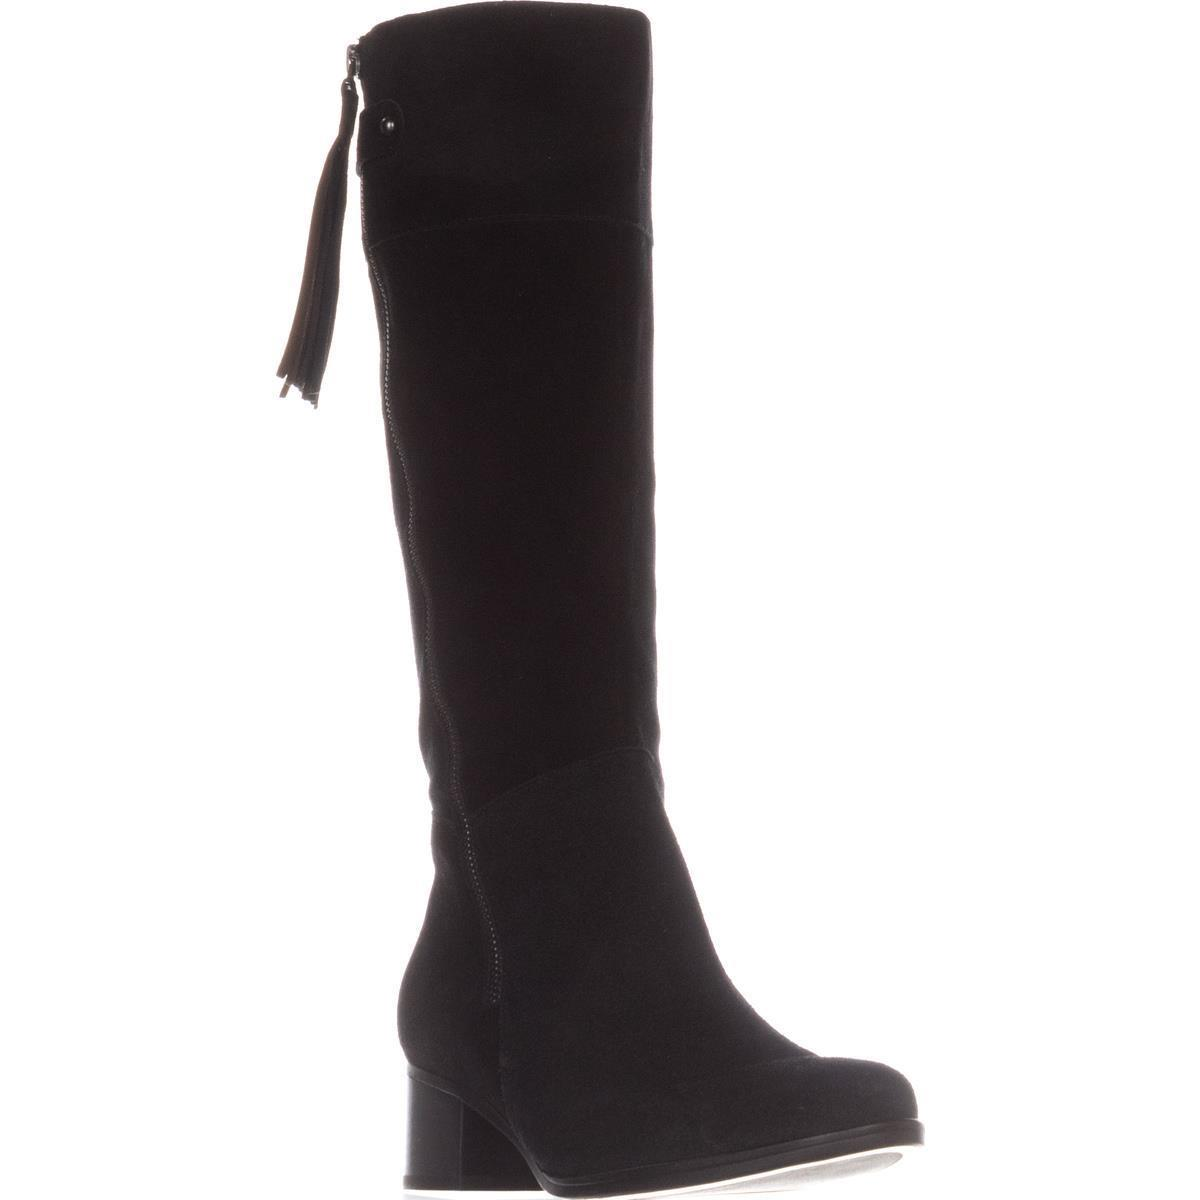 Womens Naturalizer Demi Riding Boots, Black Suede by Naturalizer